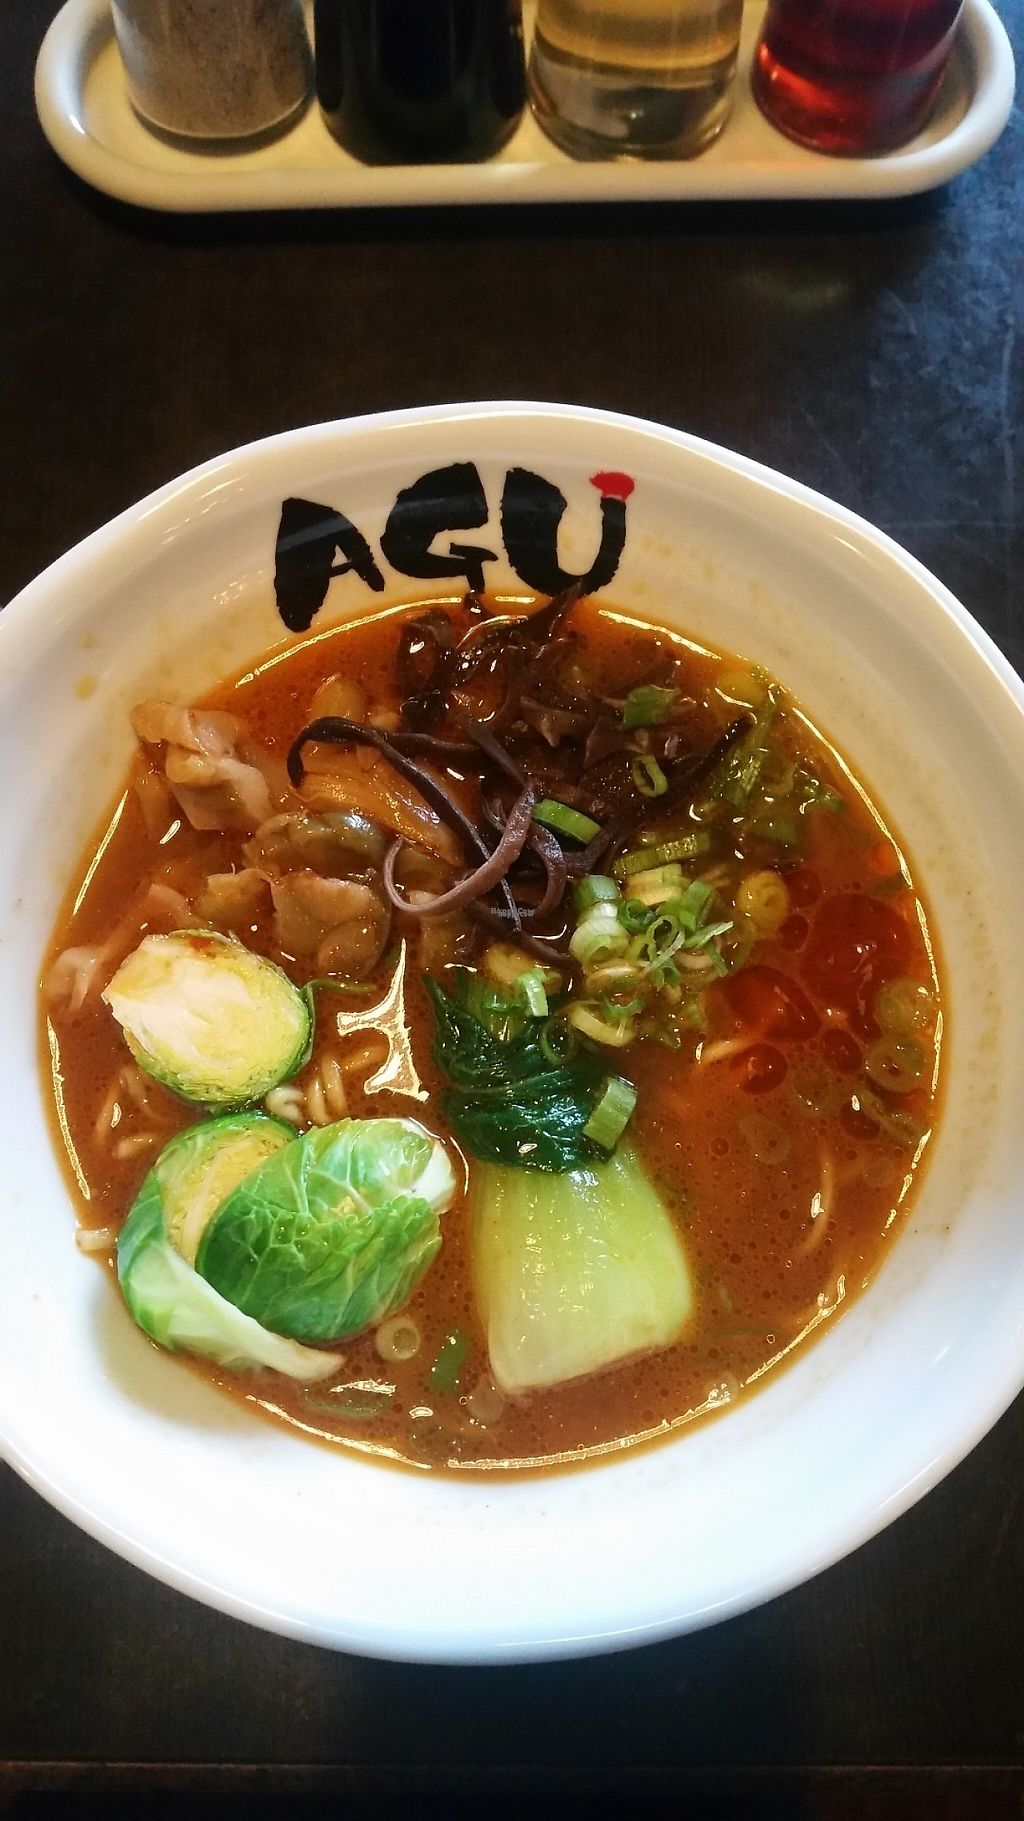 """Photo of Agu Ramen  by <a href=""""/members/profile/alyhans"""">alyhans</a> <br/>Vegetarian ramen: mushrooms, bok choy, brussel sprouts, green onions, ramen noodles, and vegetarian broth <br/> March 6, 2017  - <a href='/contact/abuse/image/88157/233237'>Report</a>"""